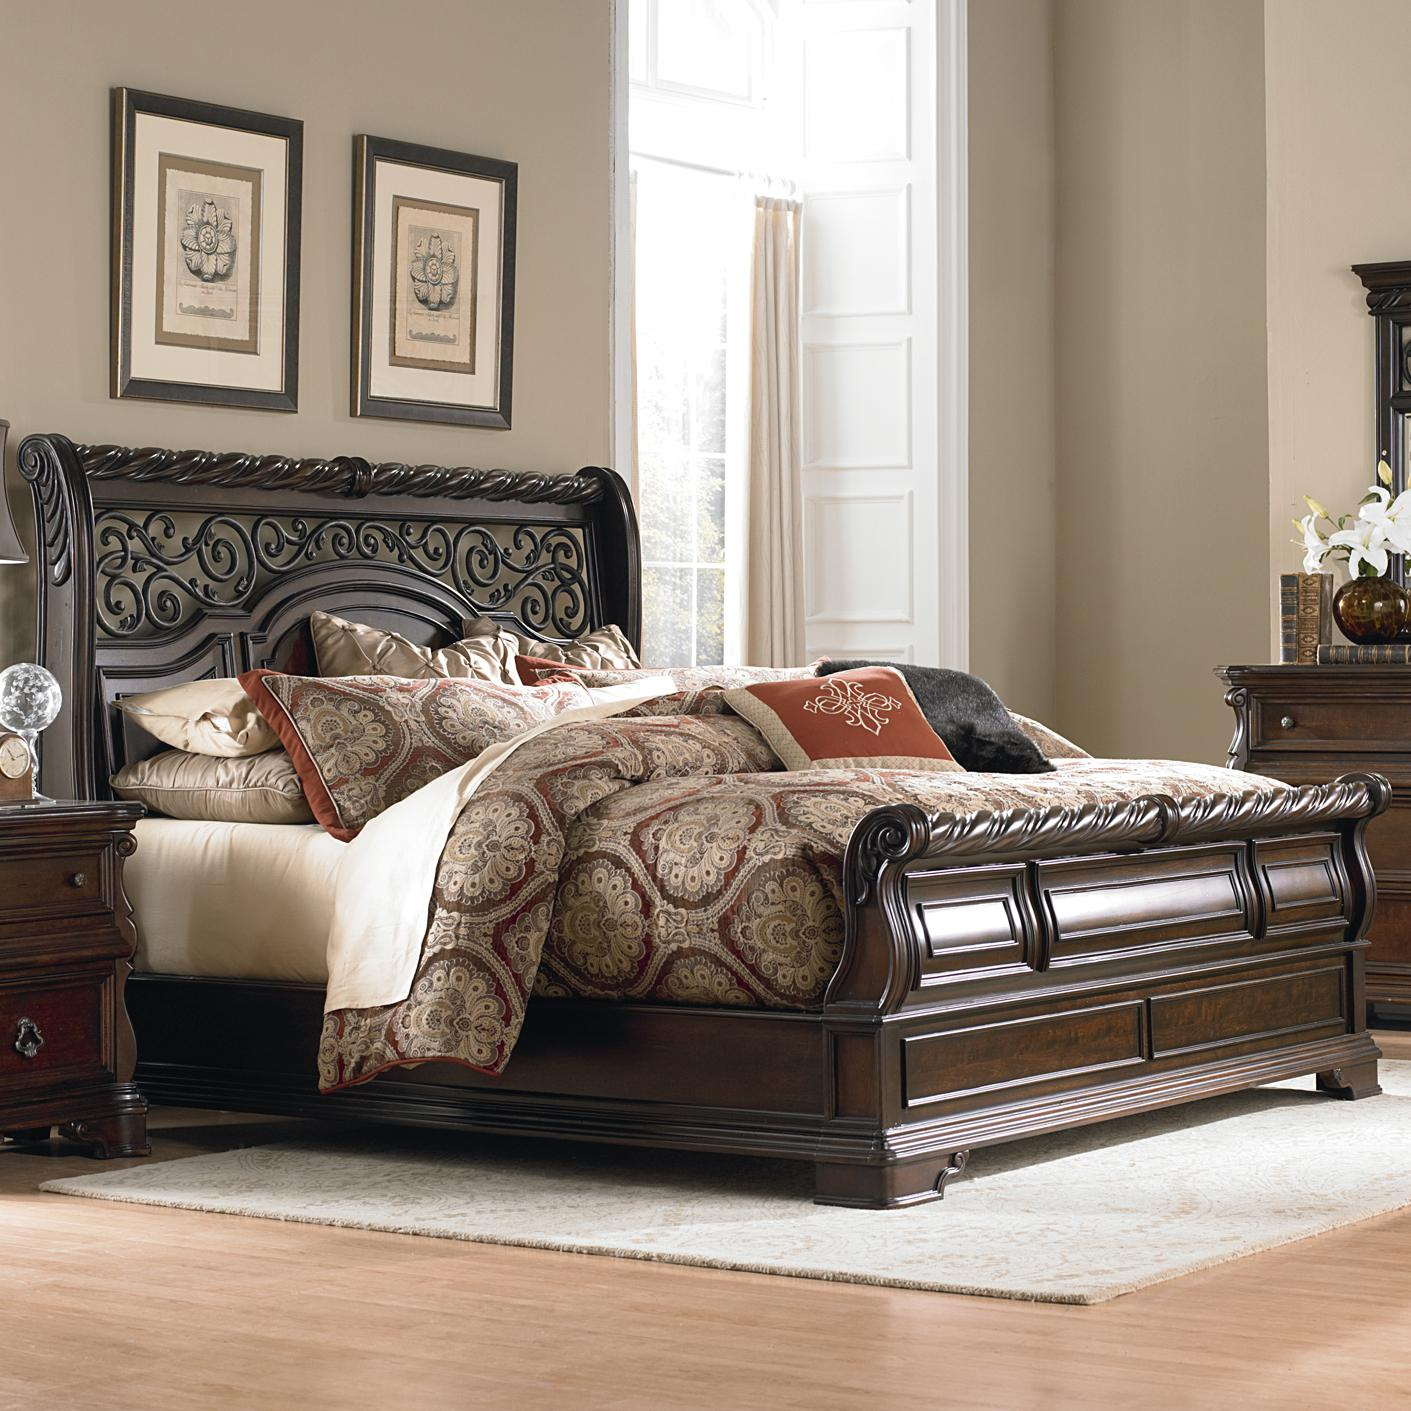 Liberty furniture arbor place 575 br ksl king traditional sleigh bed great american home store American home furniture bedroom sets